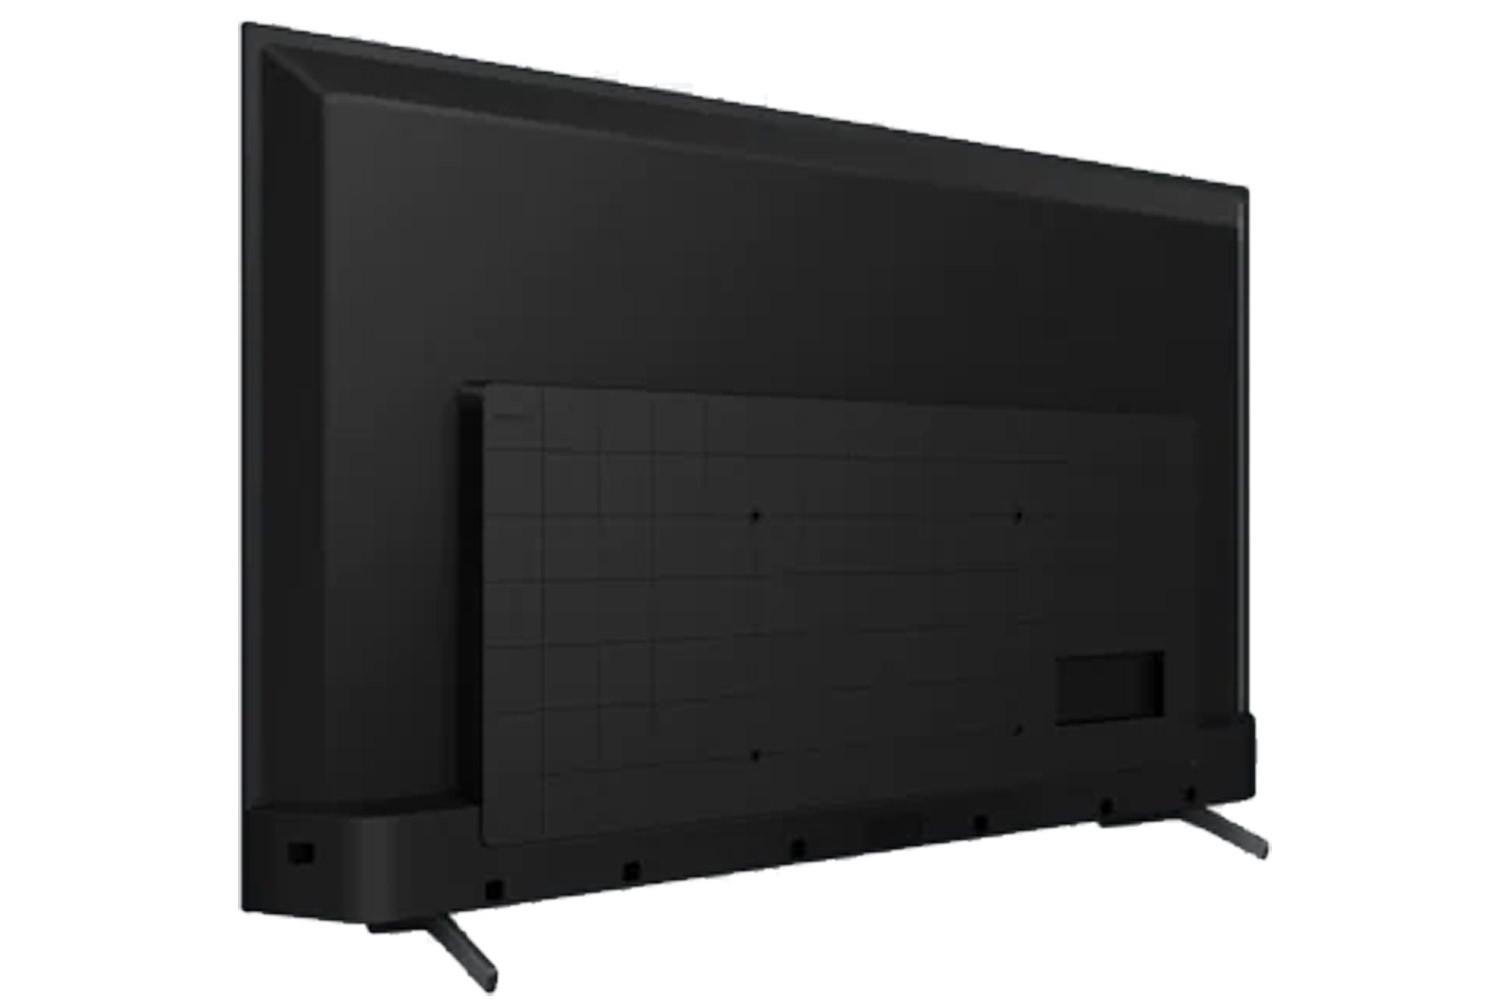 Smart Tivi 4K Sony KD-50X75 50 inch 4K HDR Android TV